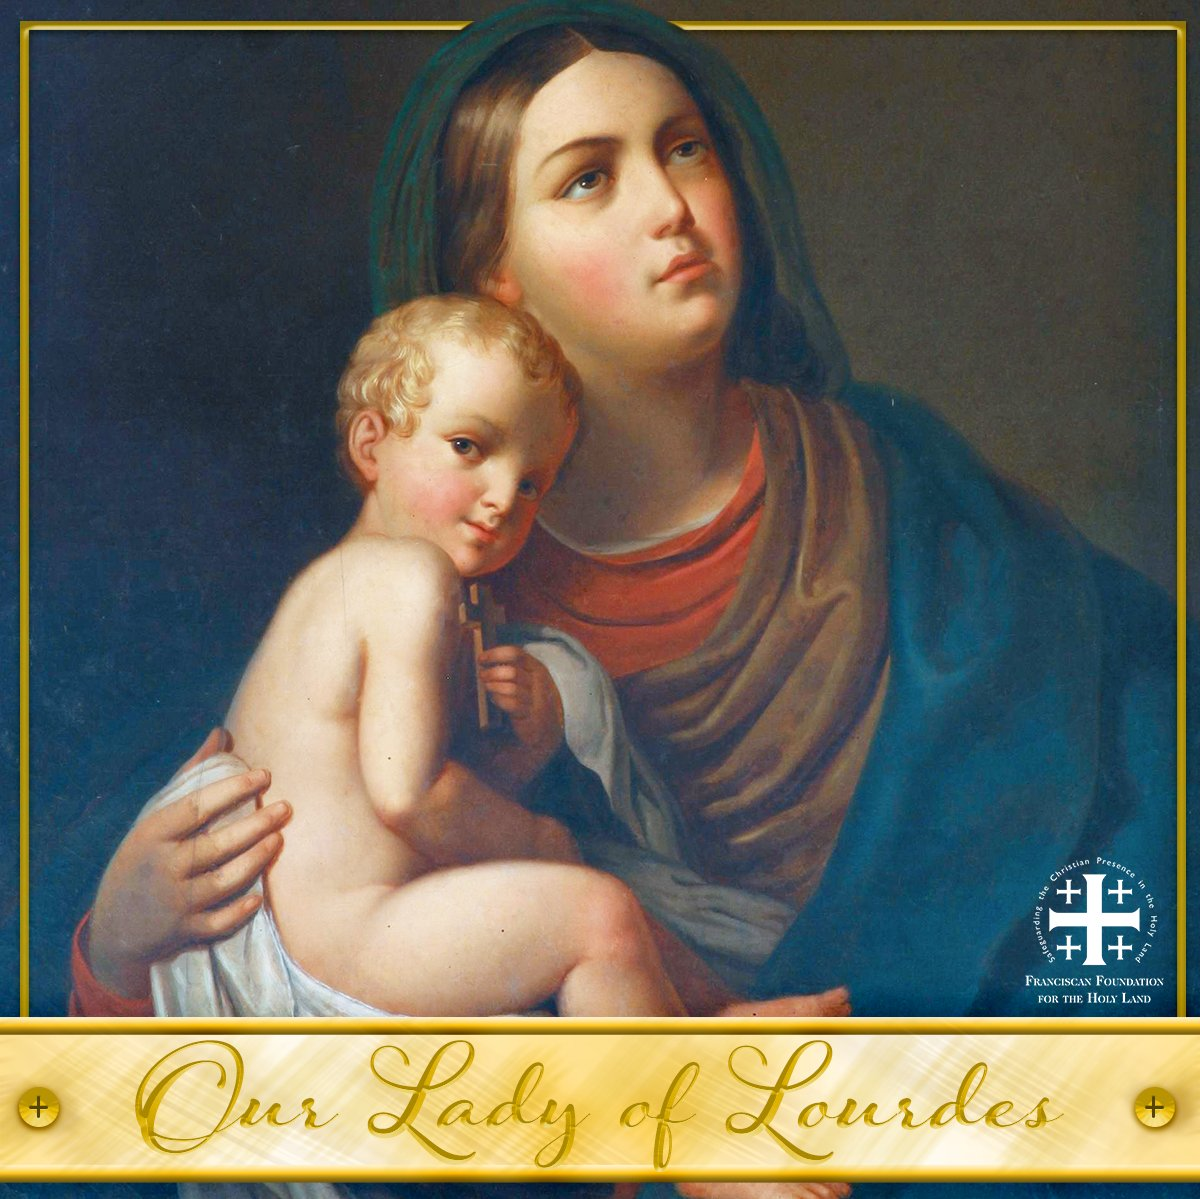 FFHL's photo on our lady of lourdes